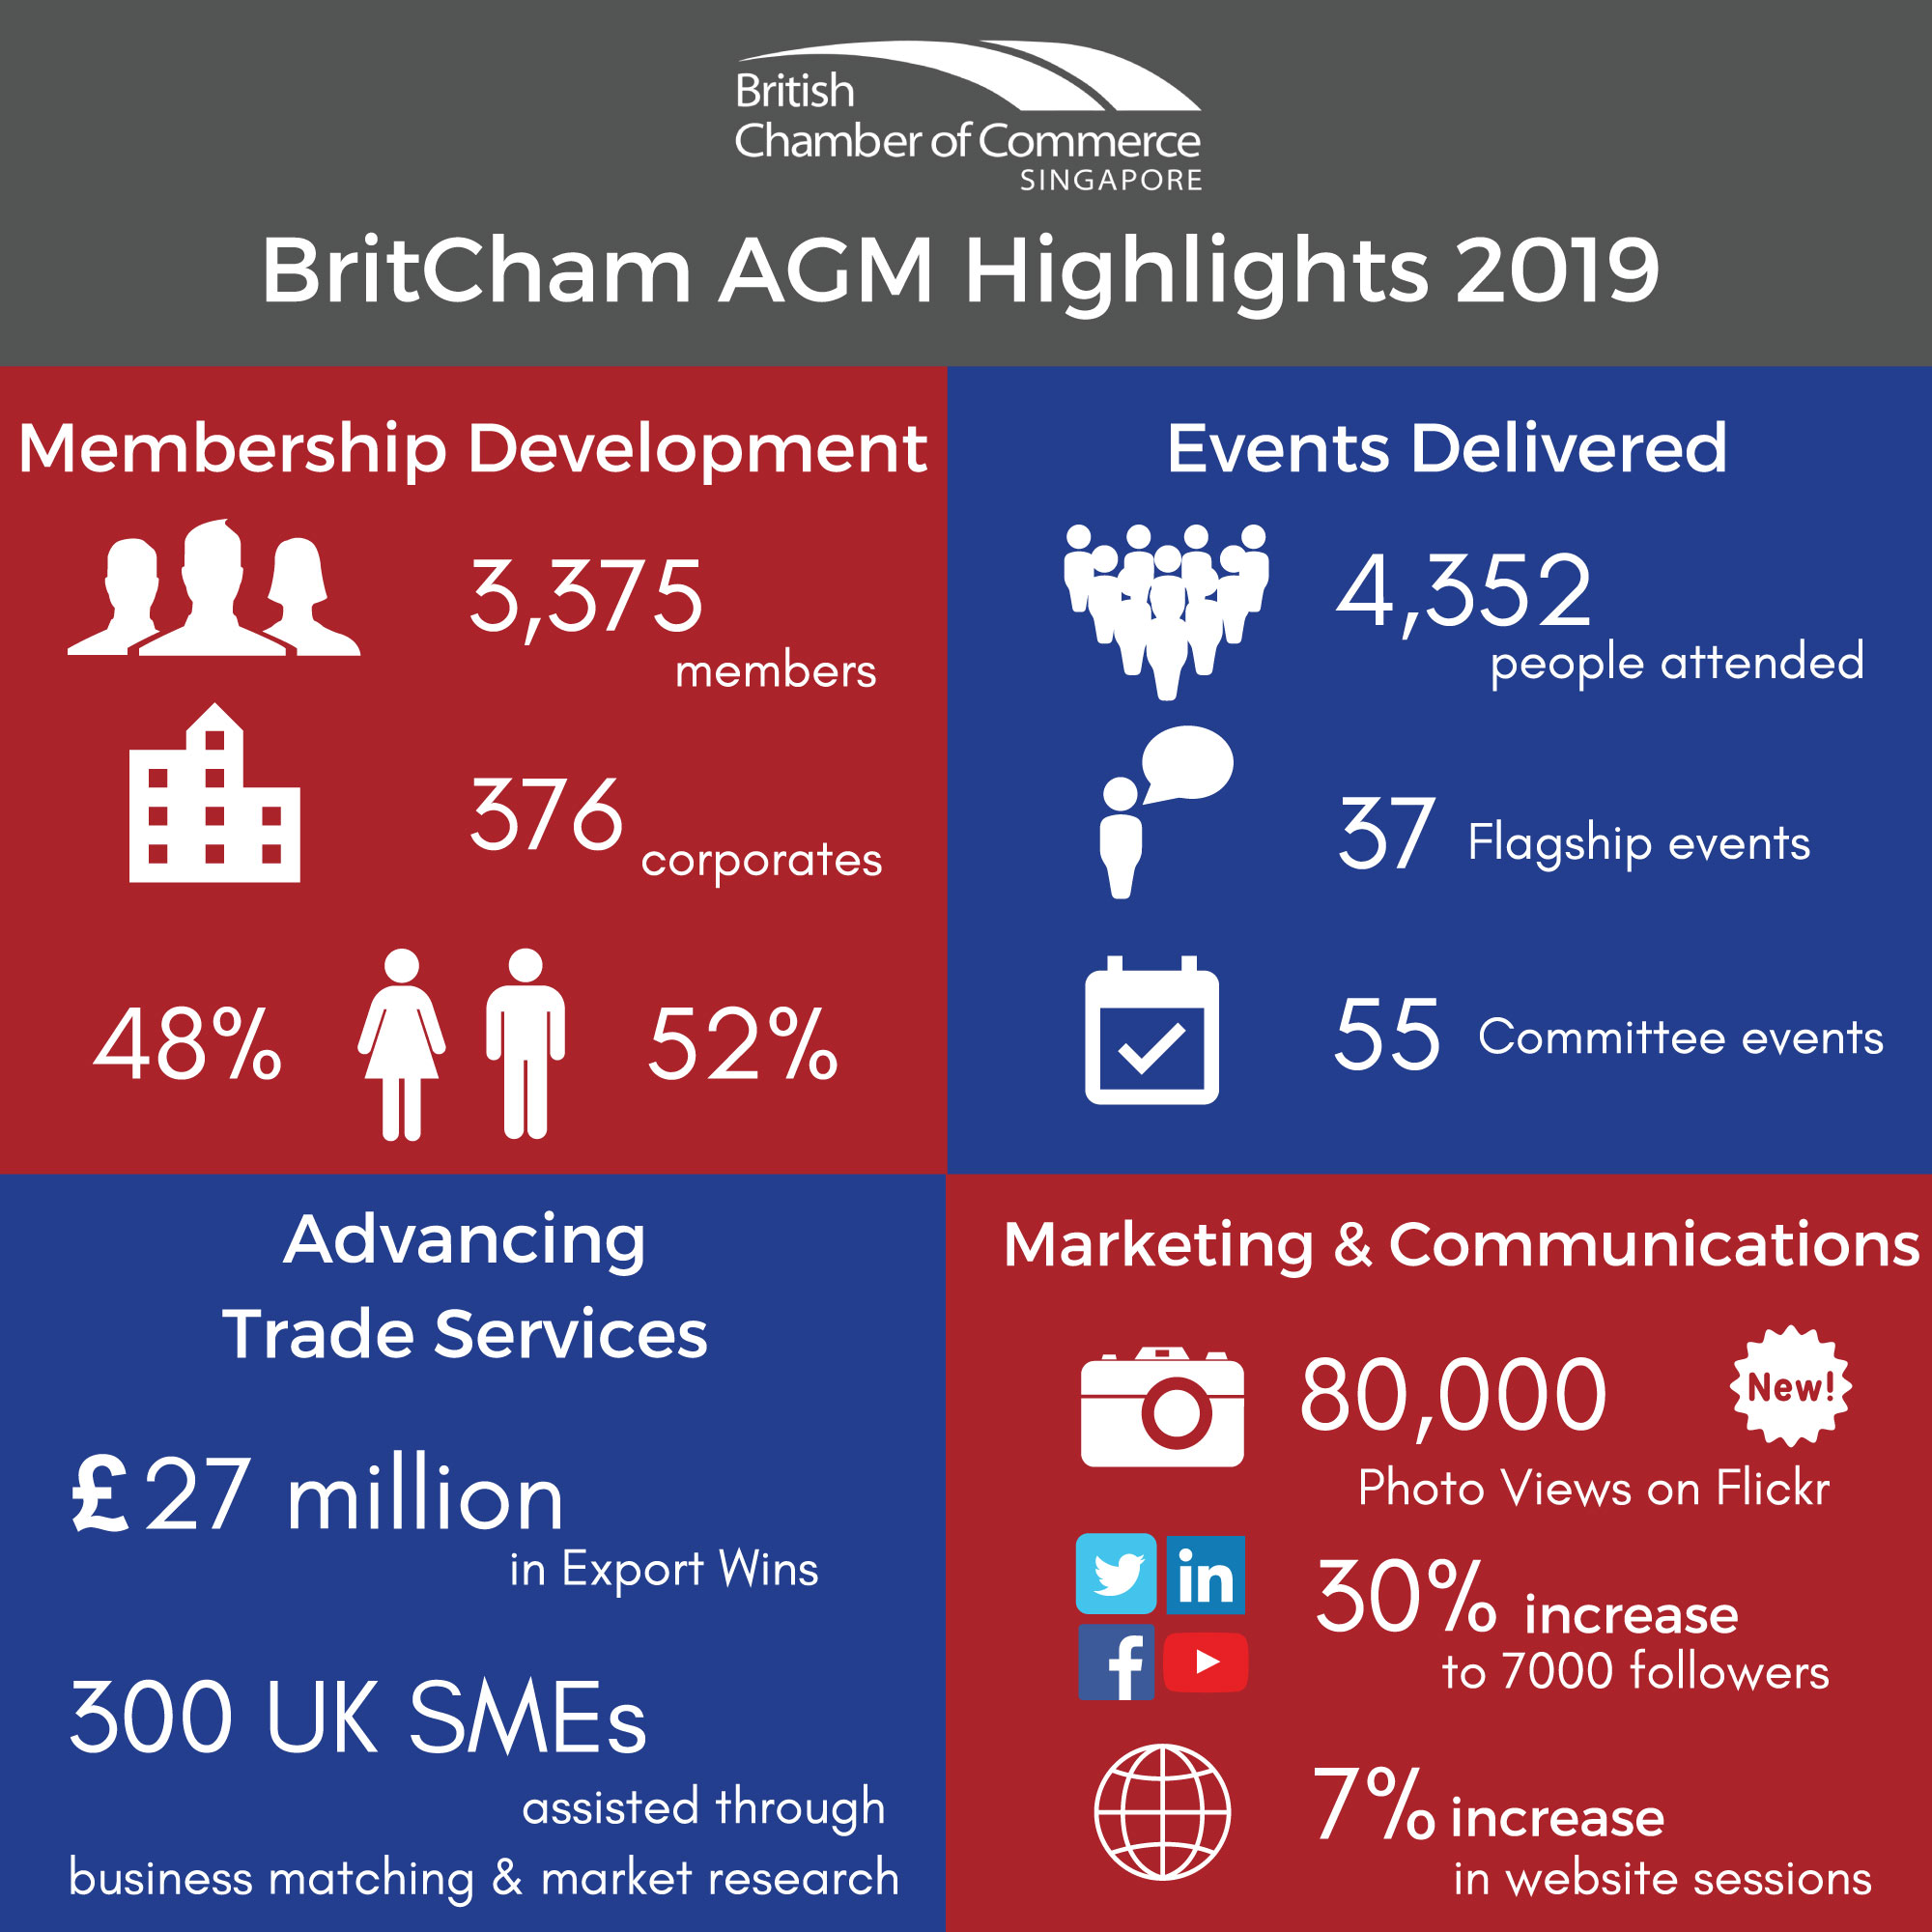 BritCham AGM infographic